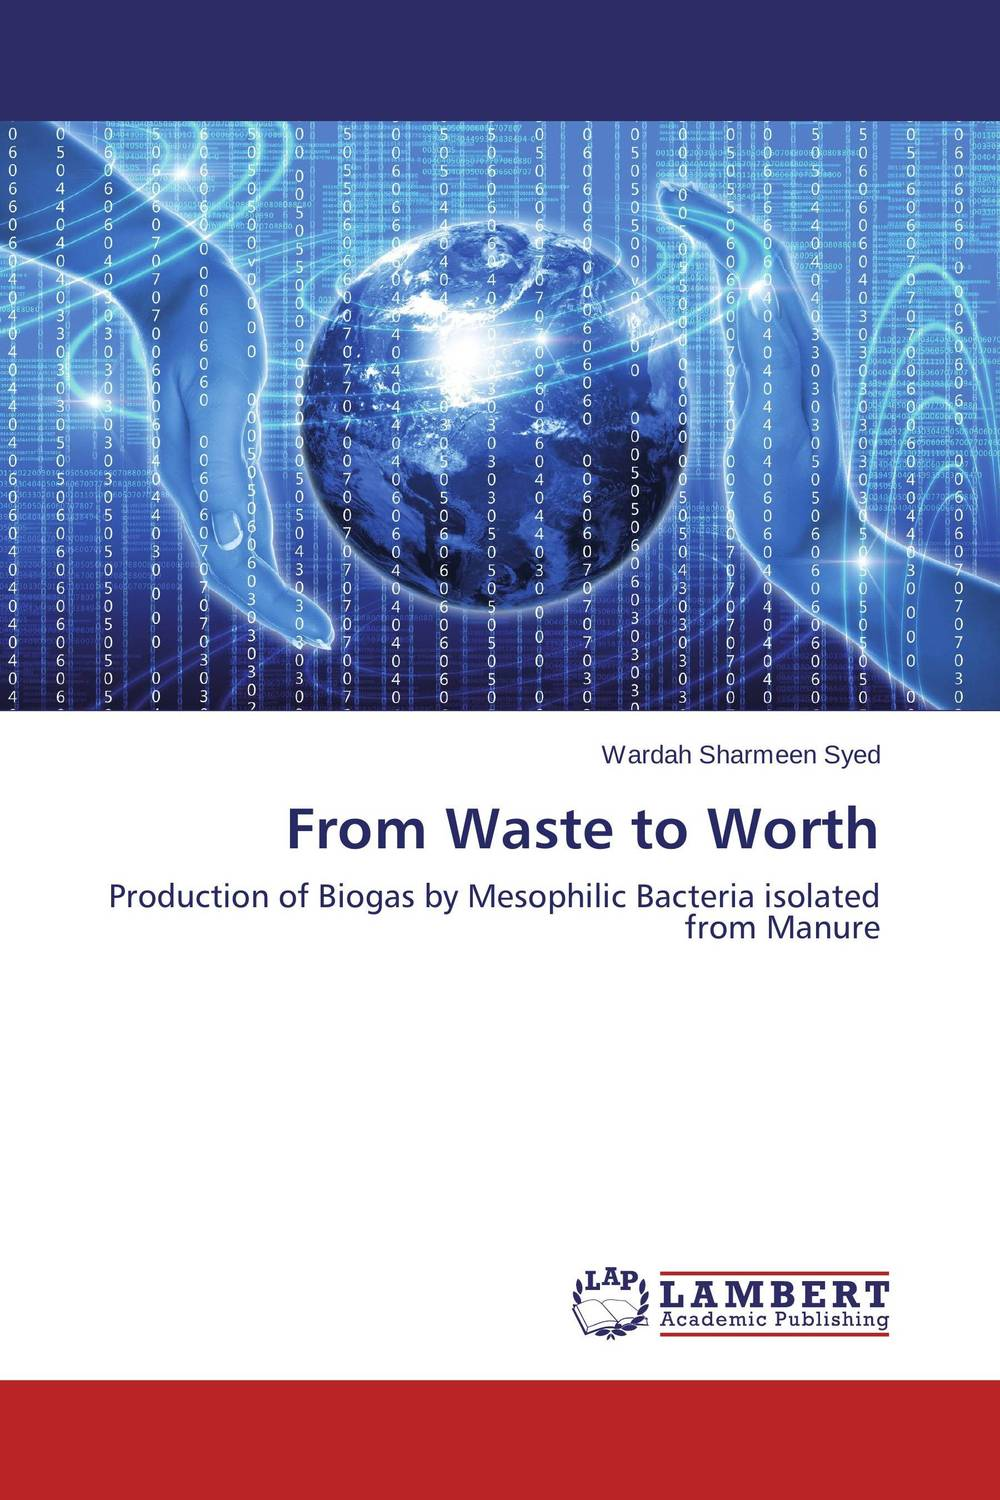 From Waste to Worth erickson increase its worth 101 ways to maximi ze the value of your house pr only